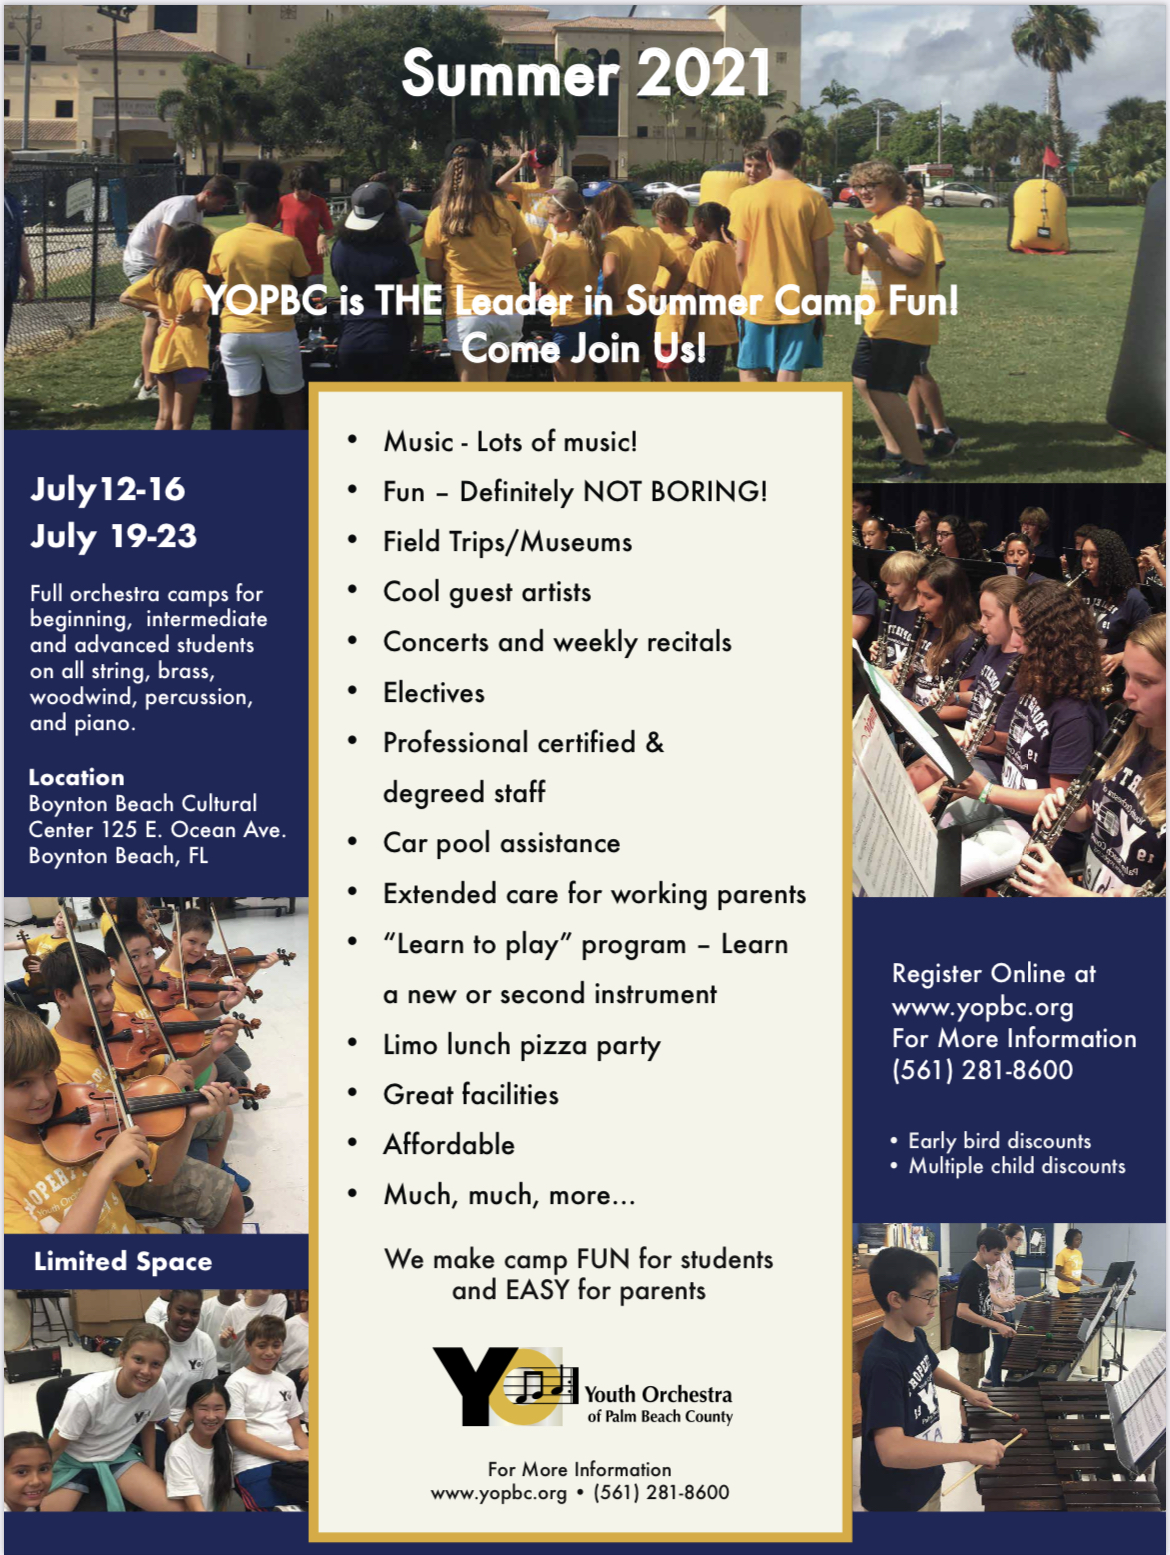 Youth Orchestra of Palm Beach County Summer Camp Info 2021